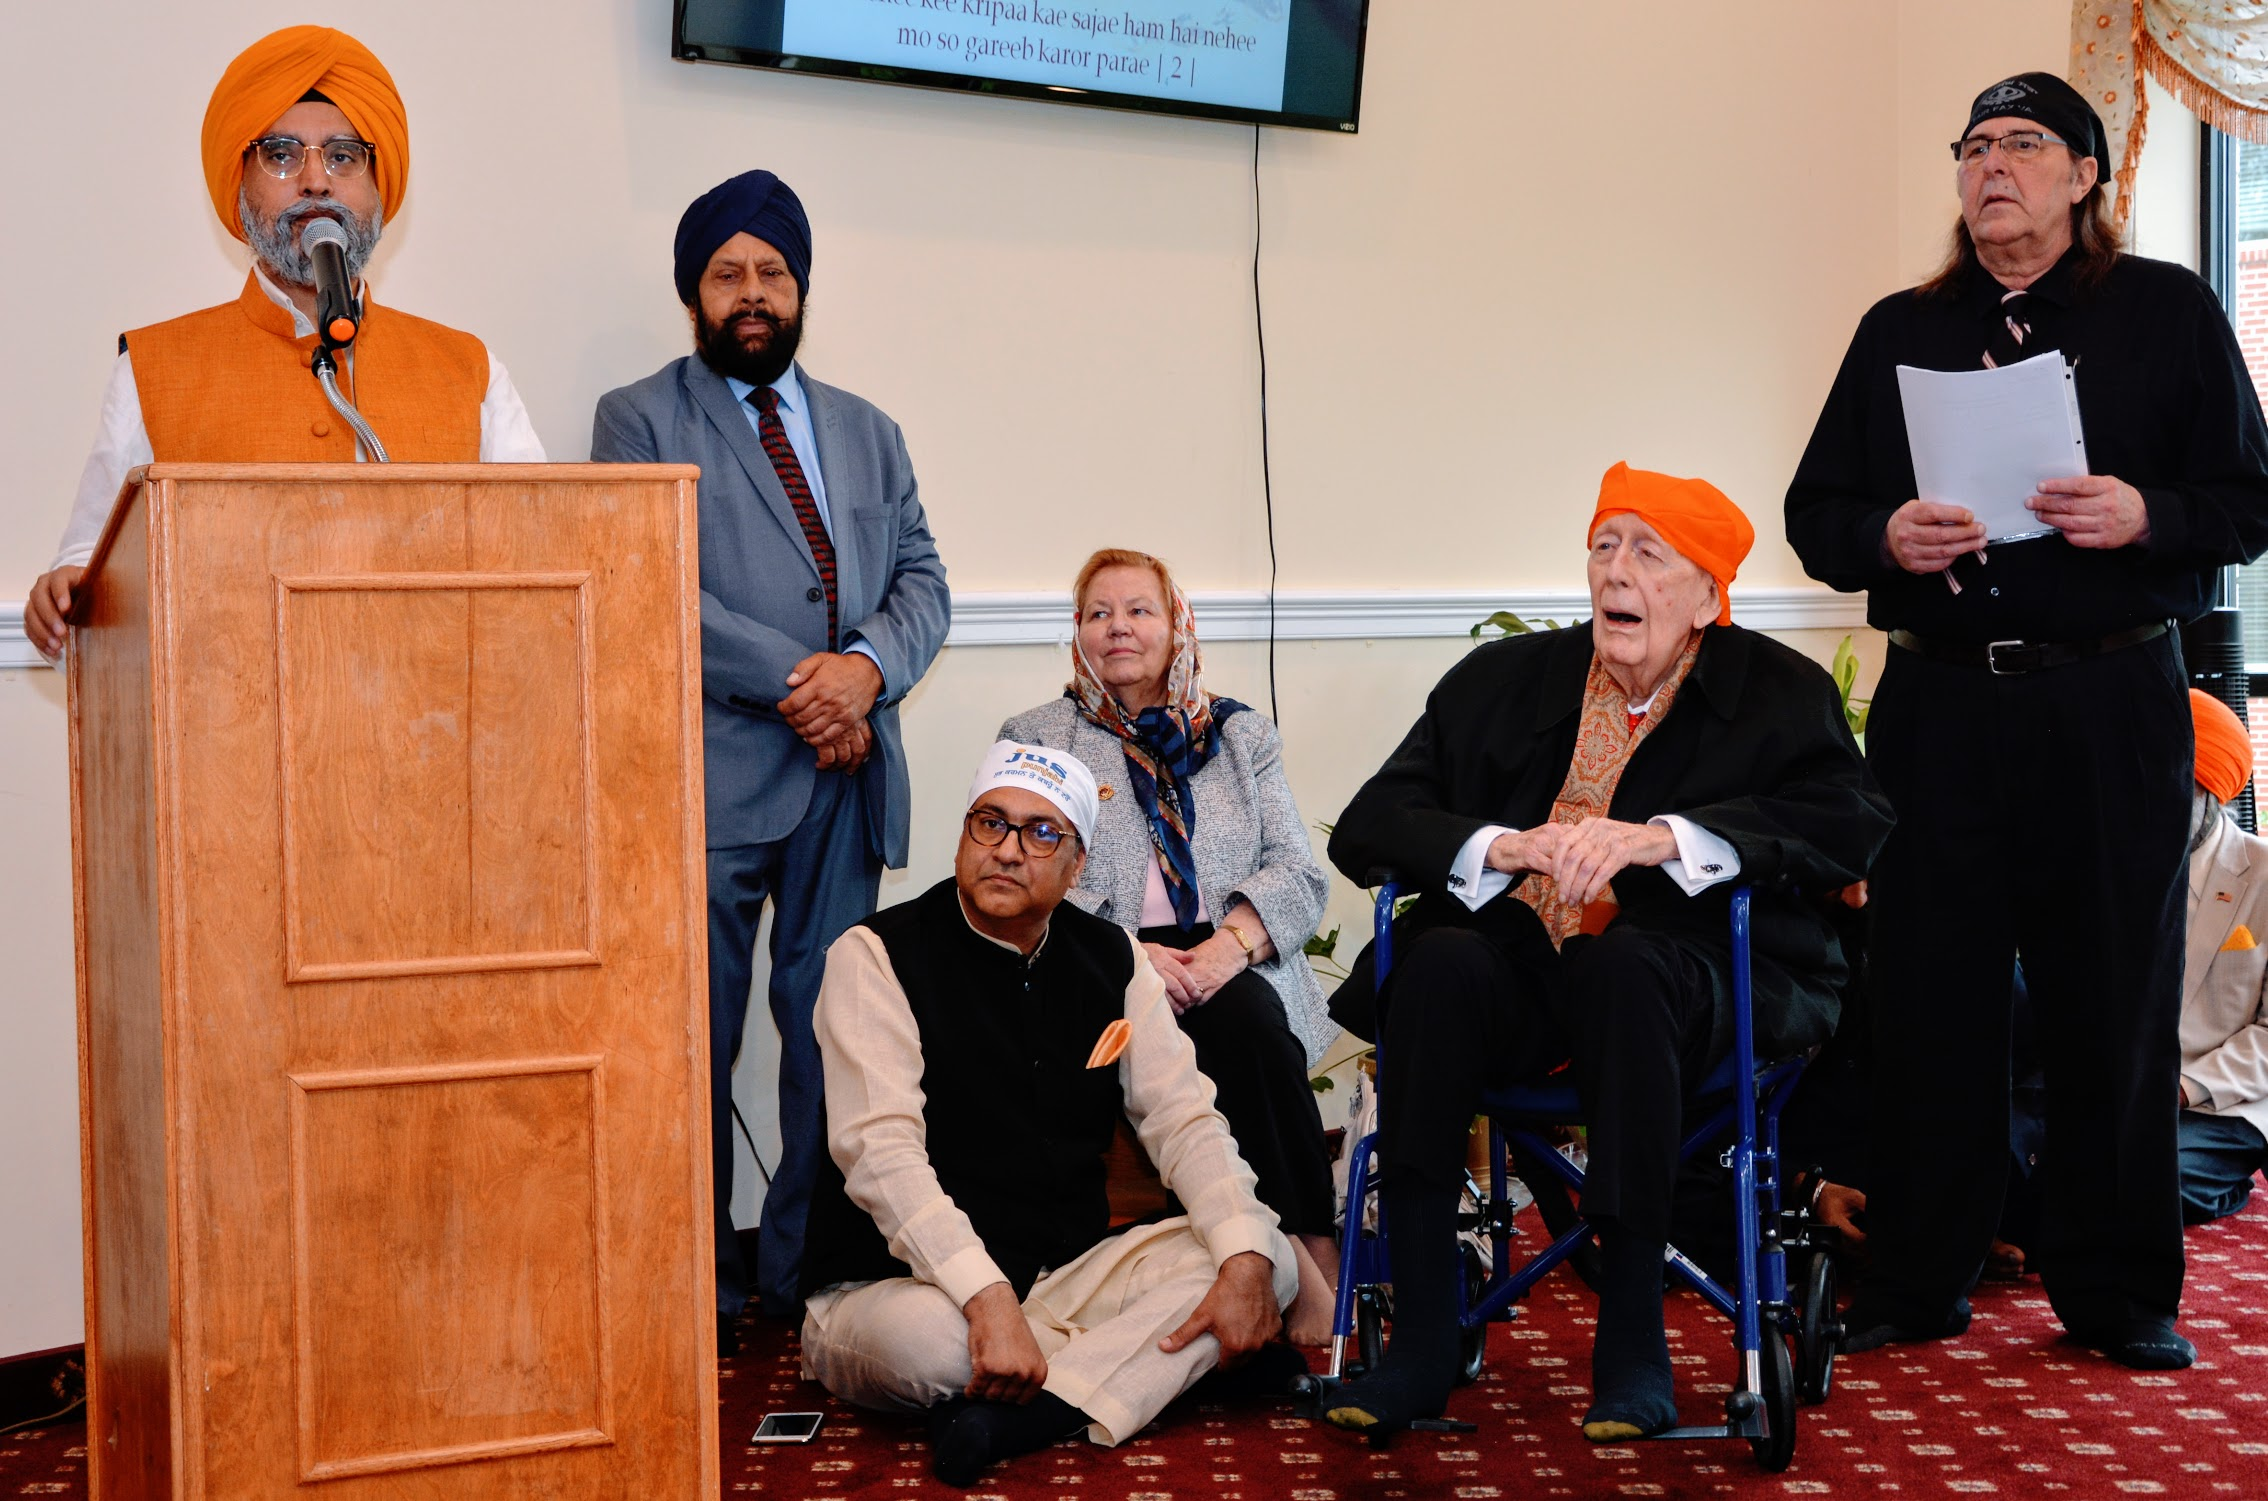 Ambassador Ceremony National Sikh Center Event